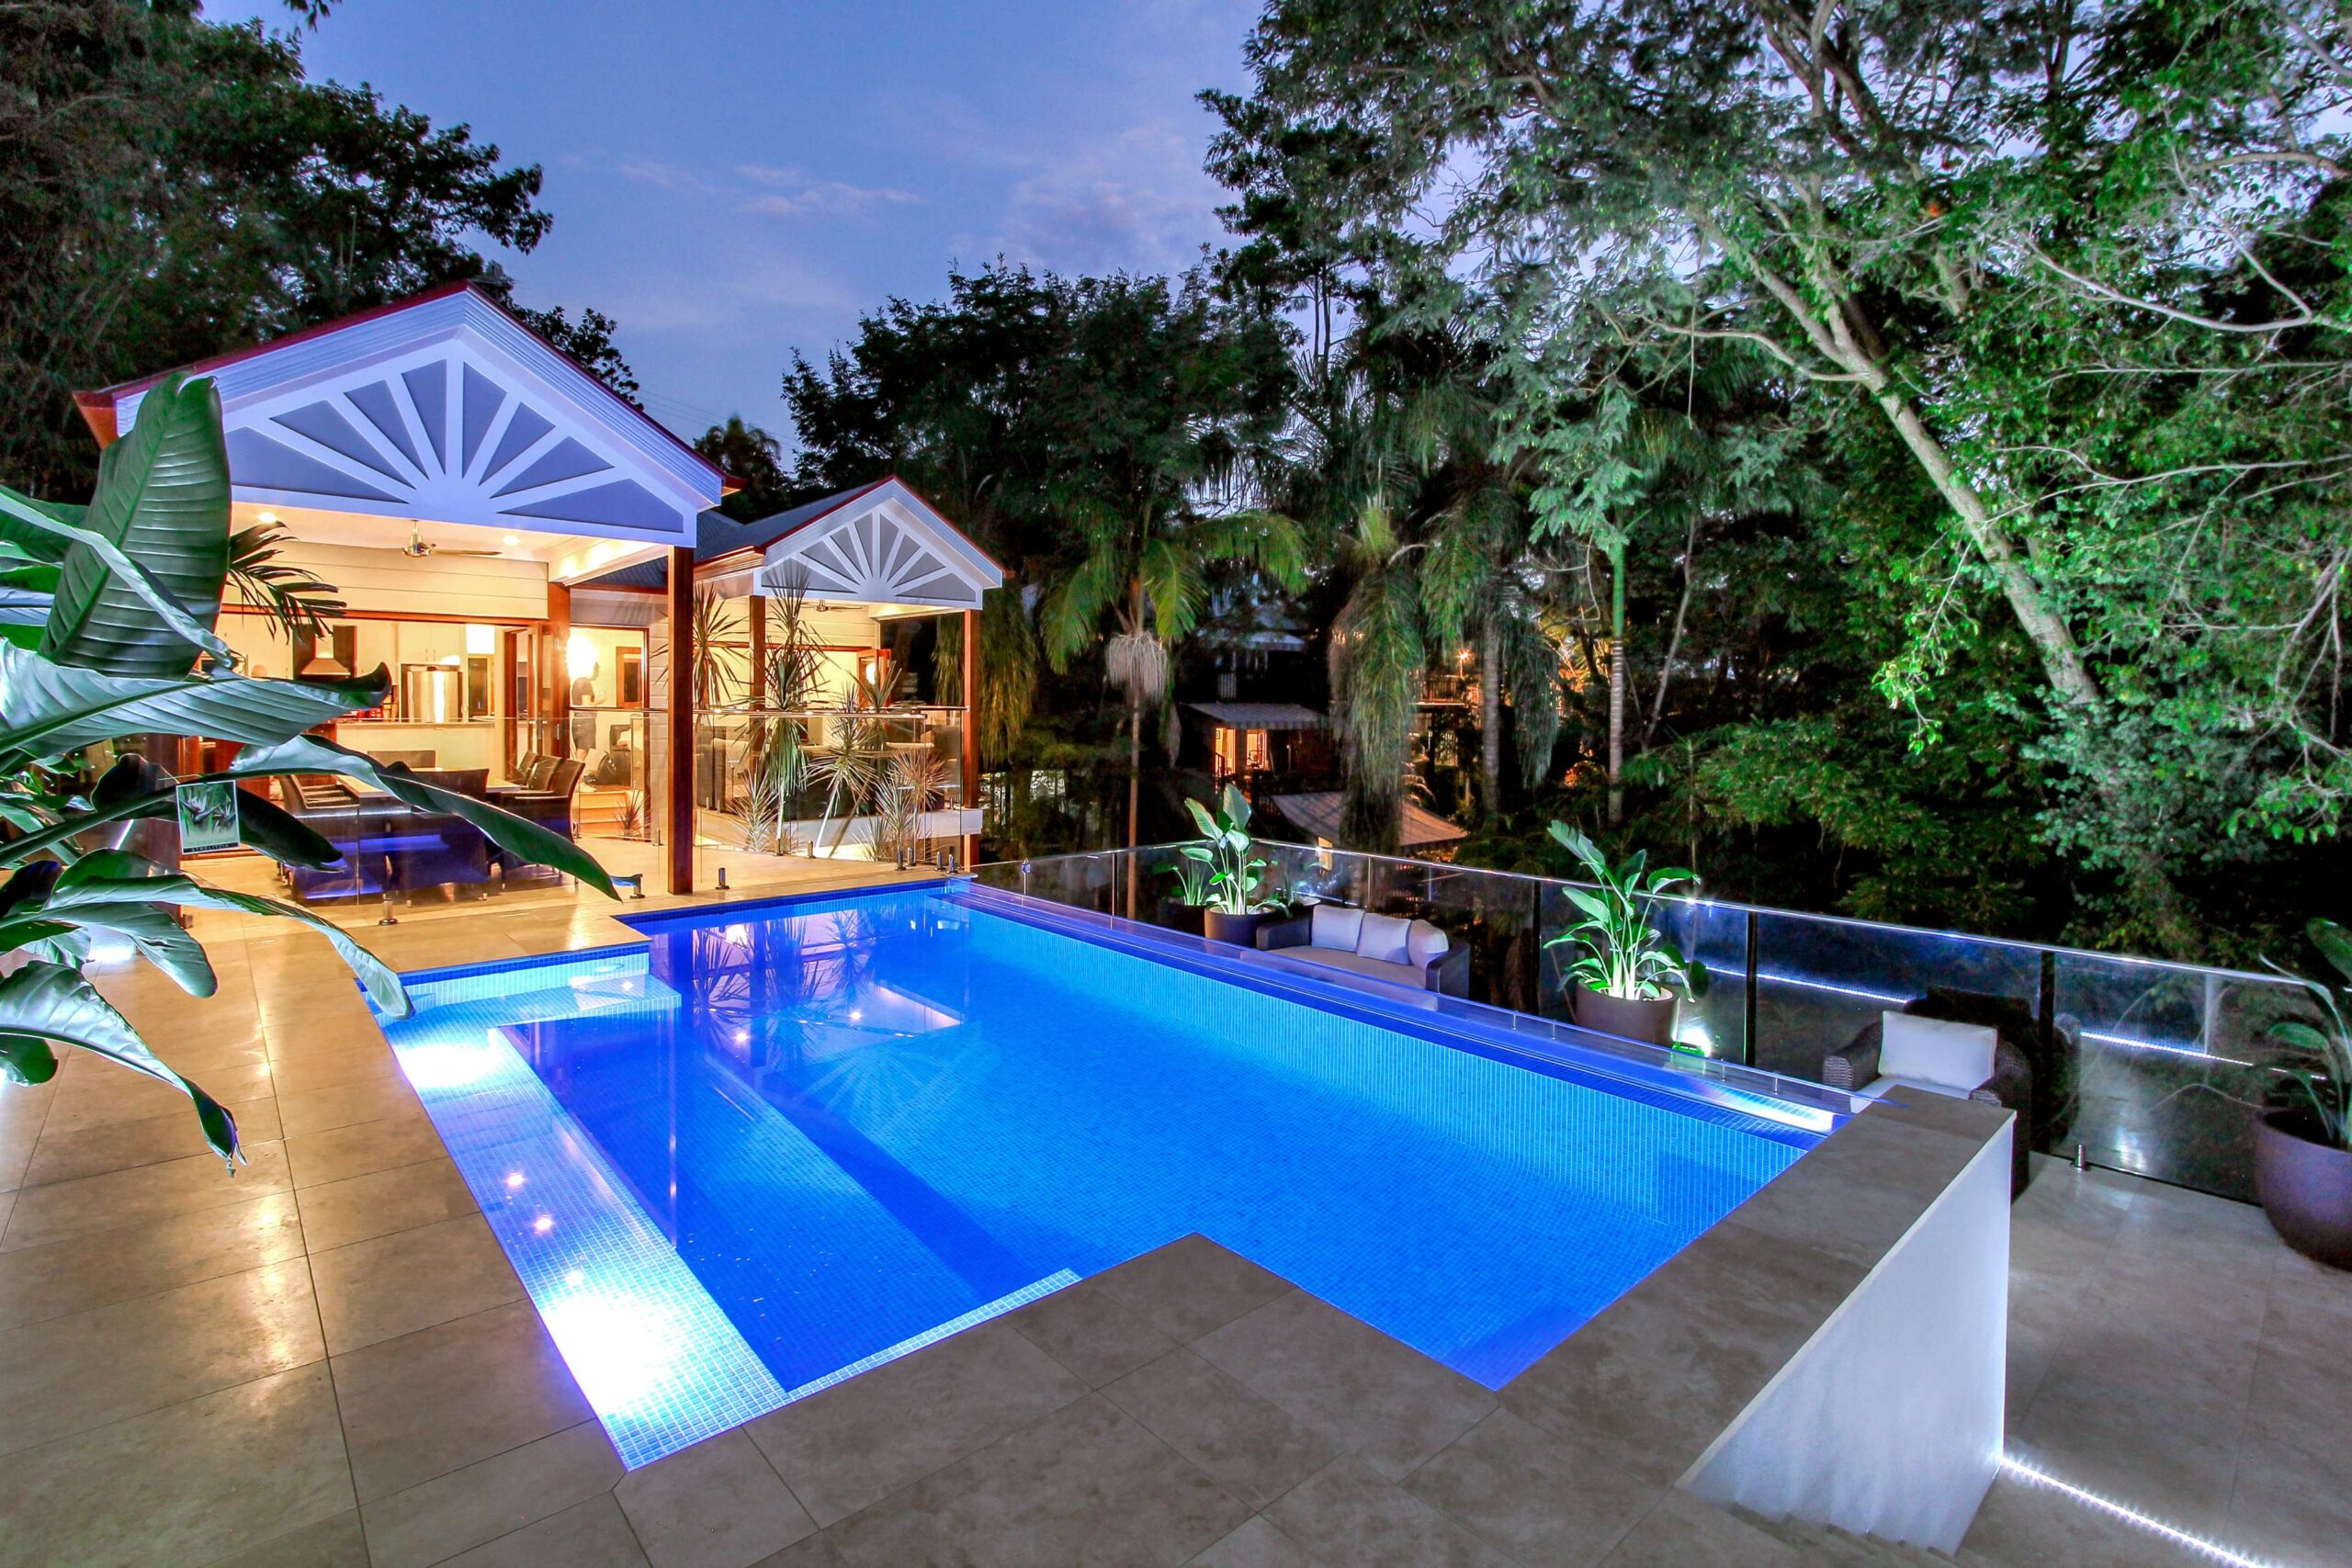 Luxury fully tiled swimming pool with lights on at night. Built you your local Gold Coast pool builders, Palm Beach Pools.